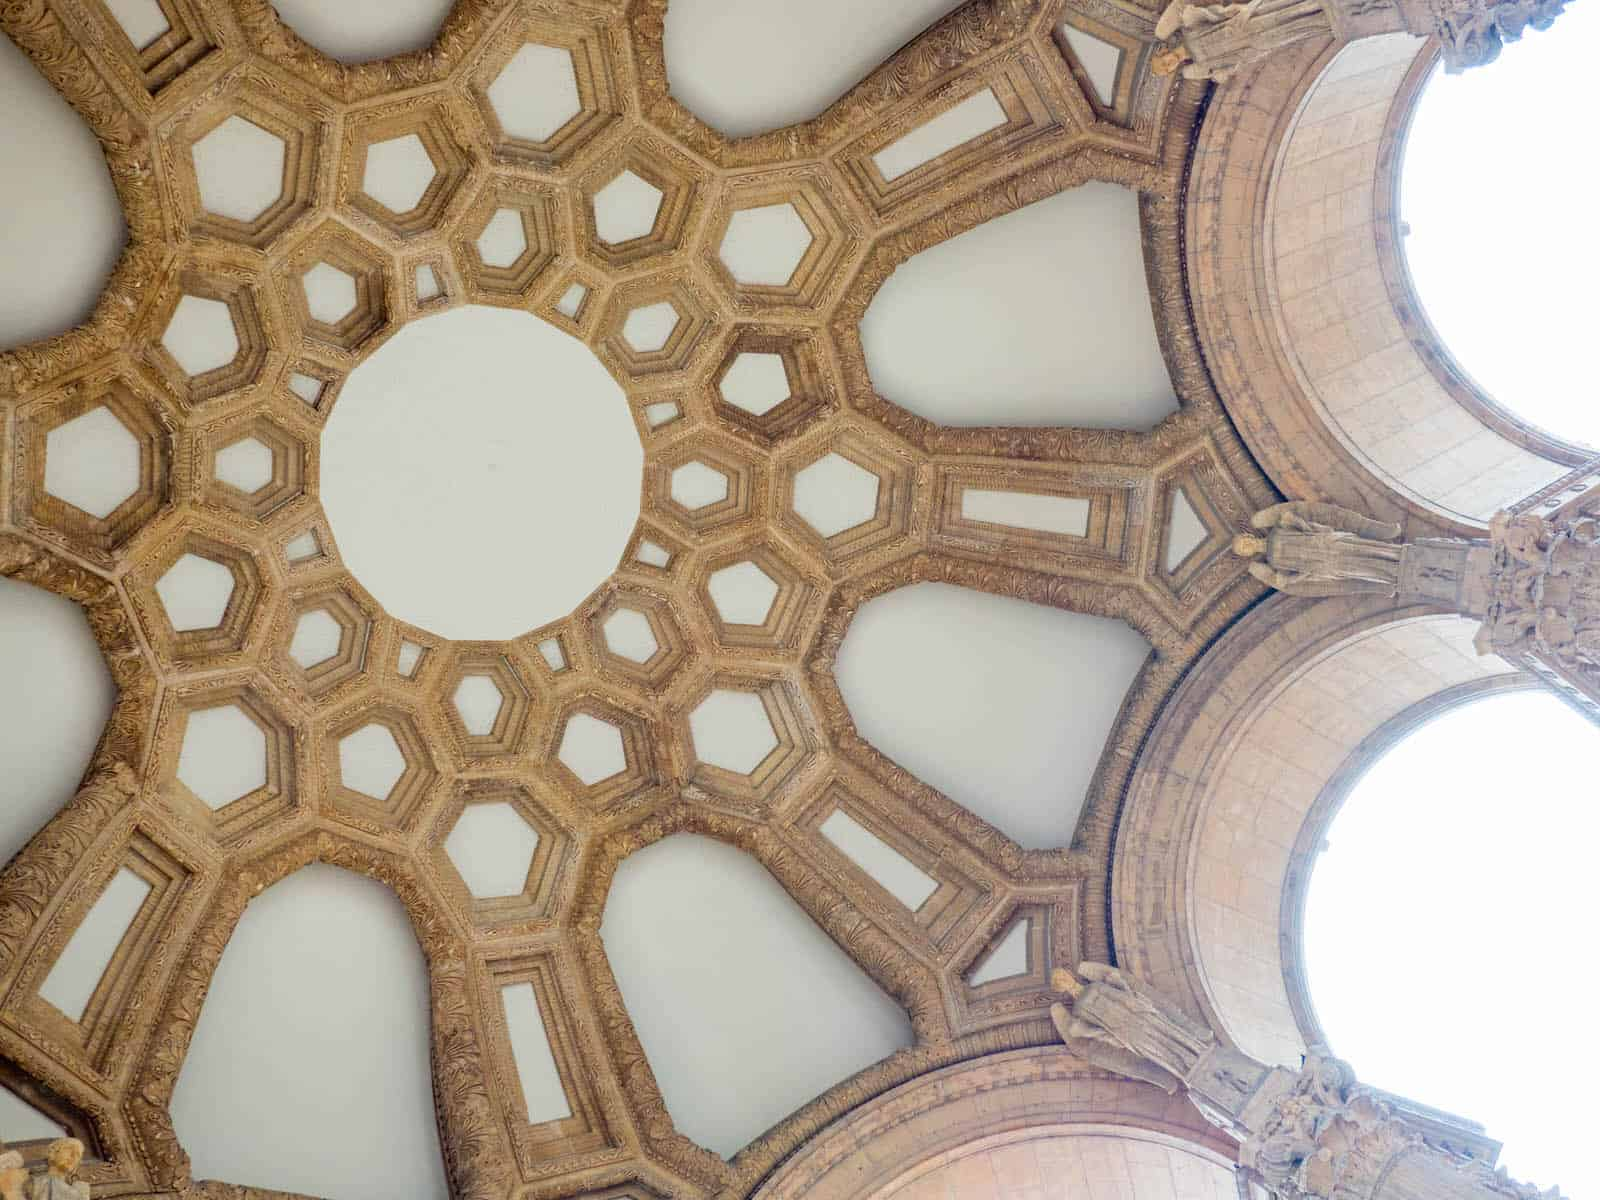 Palace of Fine Arts Dome Restored